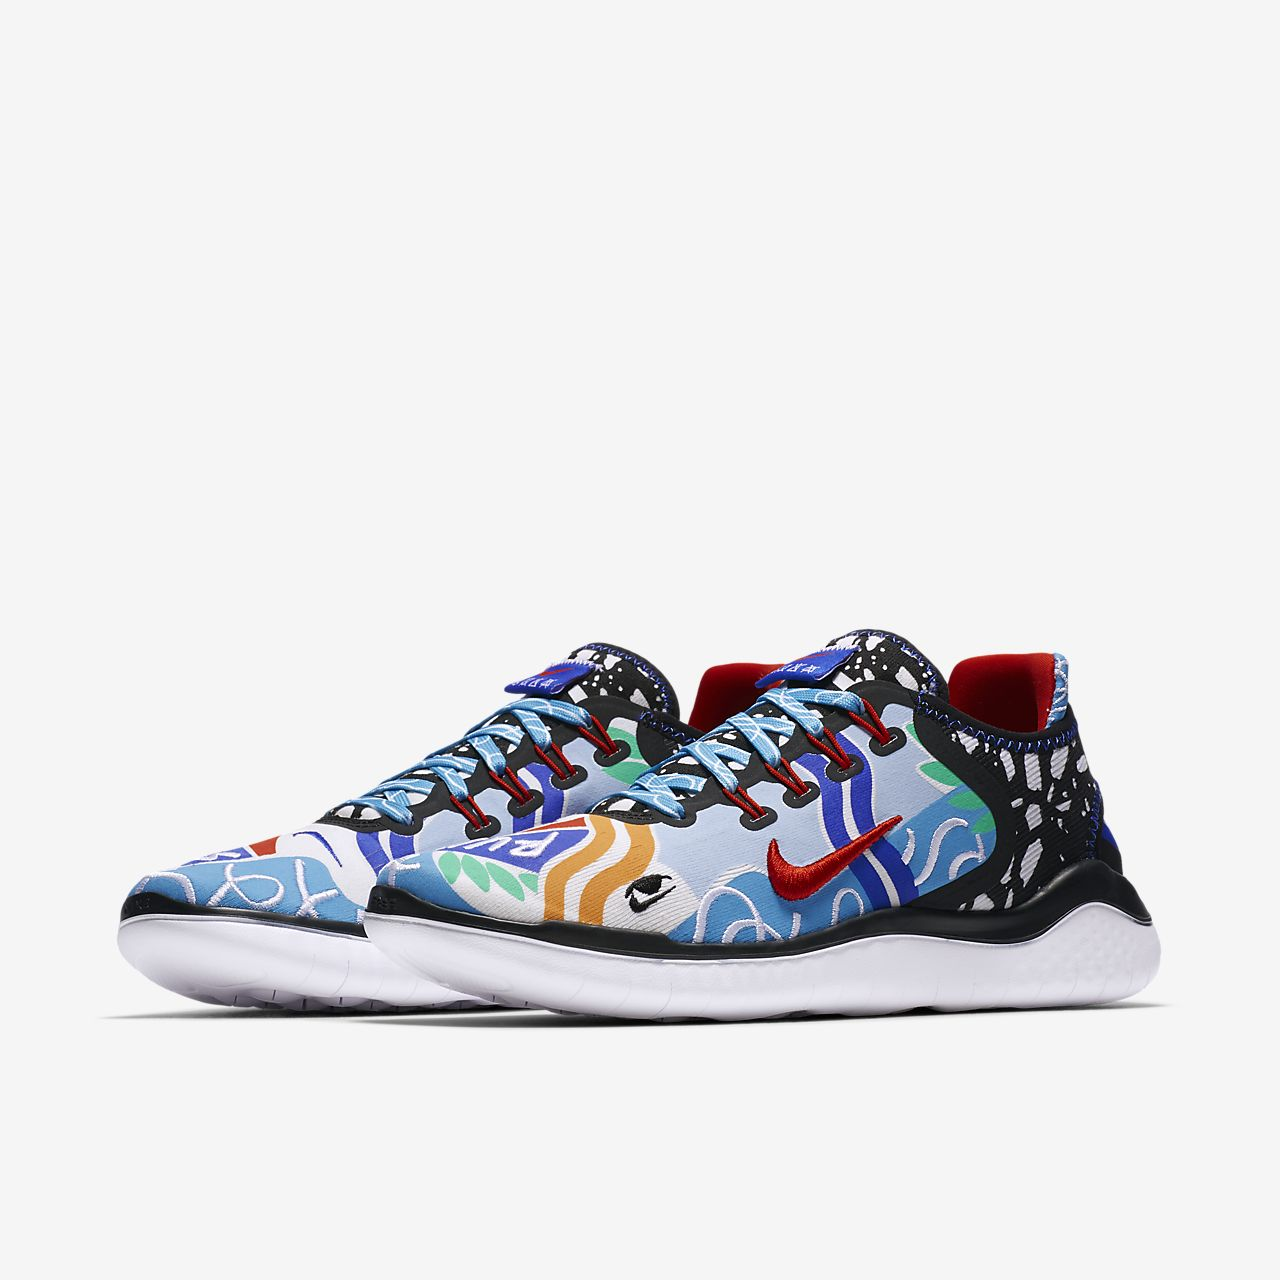 Nike x Kelly Anna Free RN 2018 T-Shirt for Your Feet Women's Running Shoe